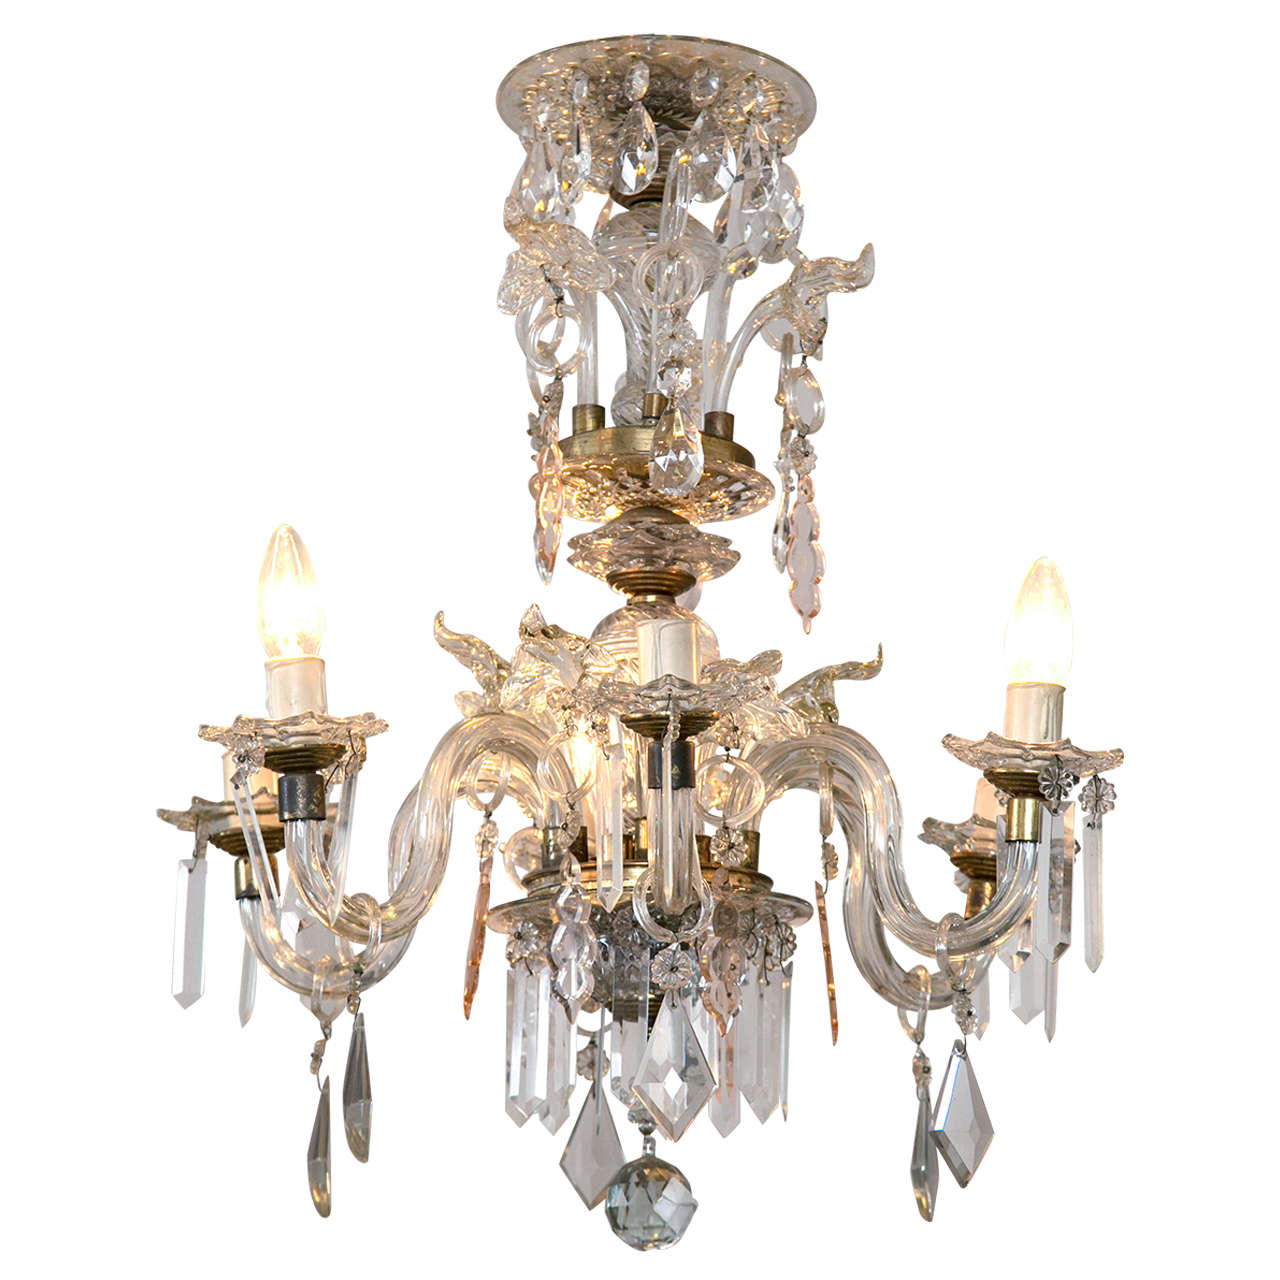 Venetian Crystal Chandelier with Large Crystals 1920s Six Light Rare Scroll Arms